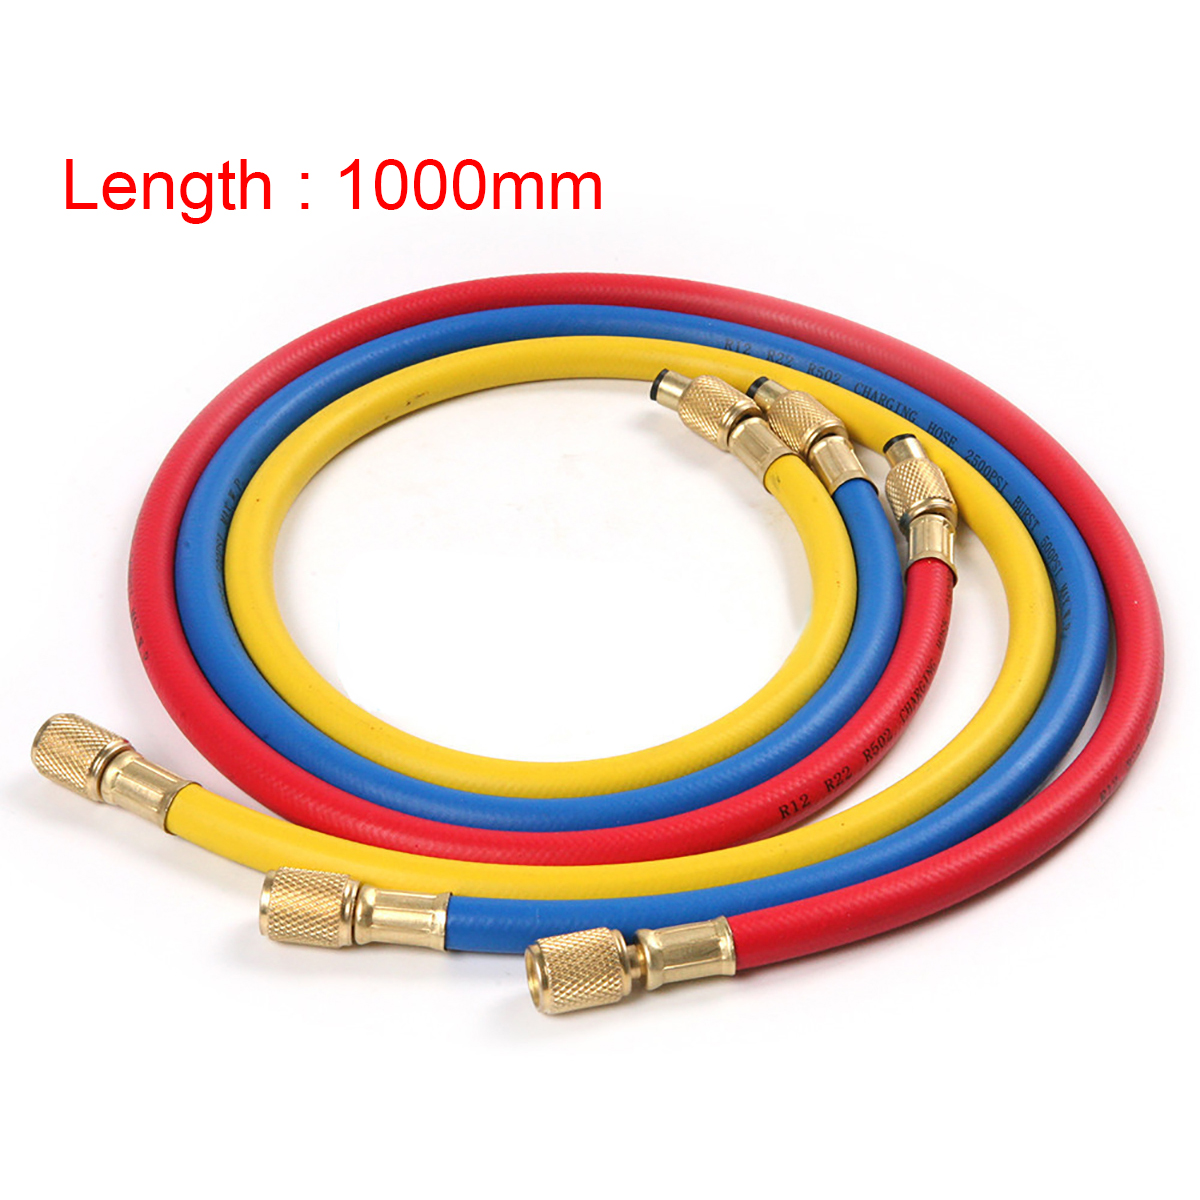 3pcs Refrigeration Charging Hose Practical High Pressure Automobile Air Conditioner Hose For Car R12 R22 R502 Refrigerant Mayitr